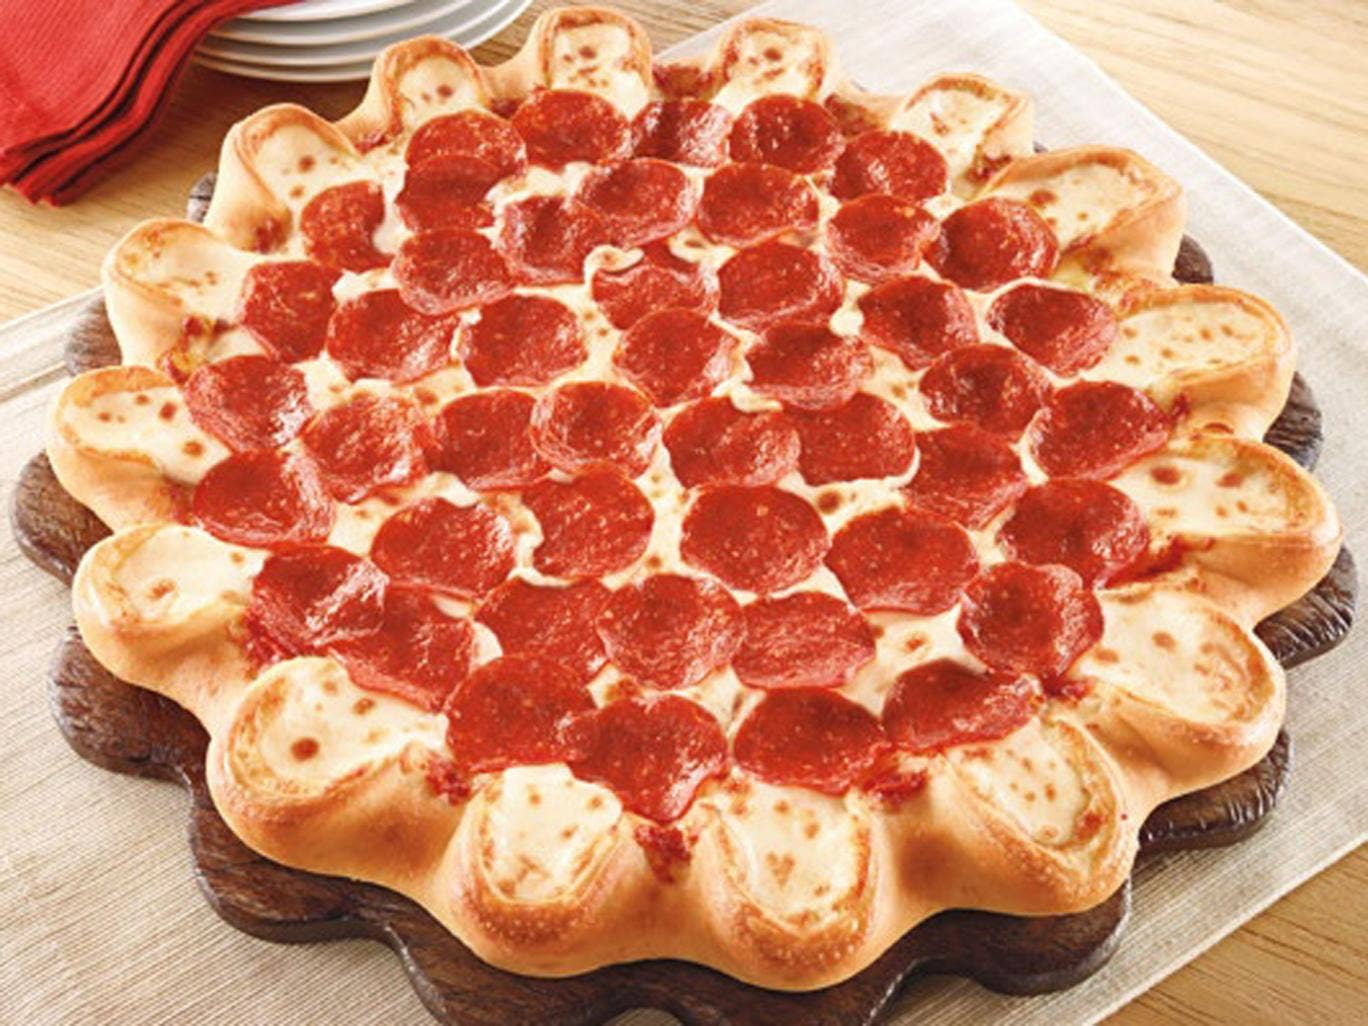 Pizza Hut's new pizza has handmade pockets of molten mozzarella, provolone, fontina, mild cheddar and other cheeses around the rim.